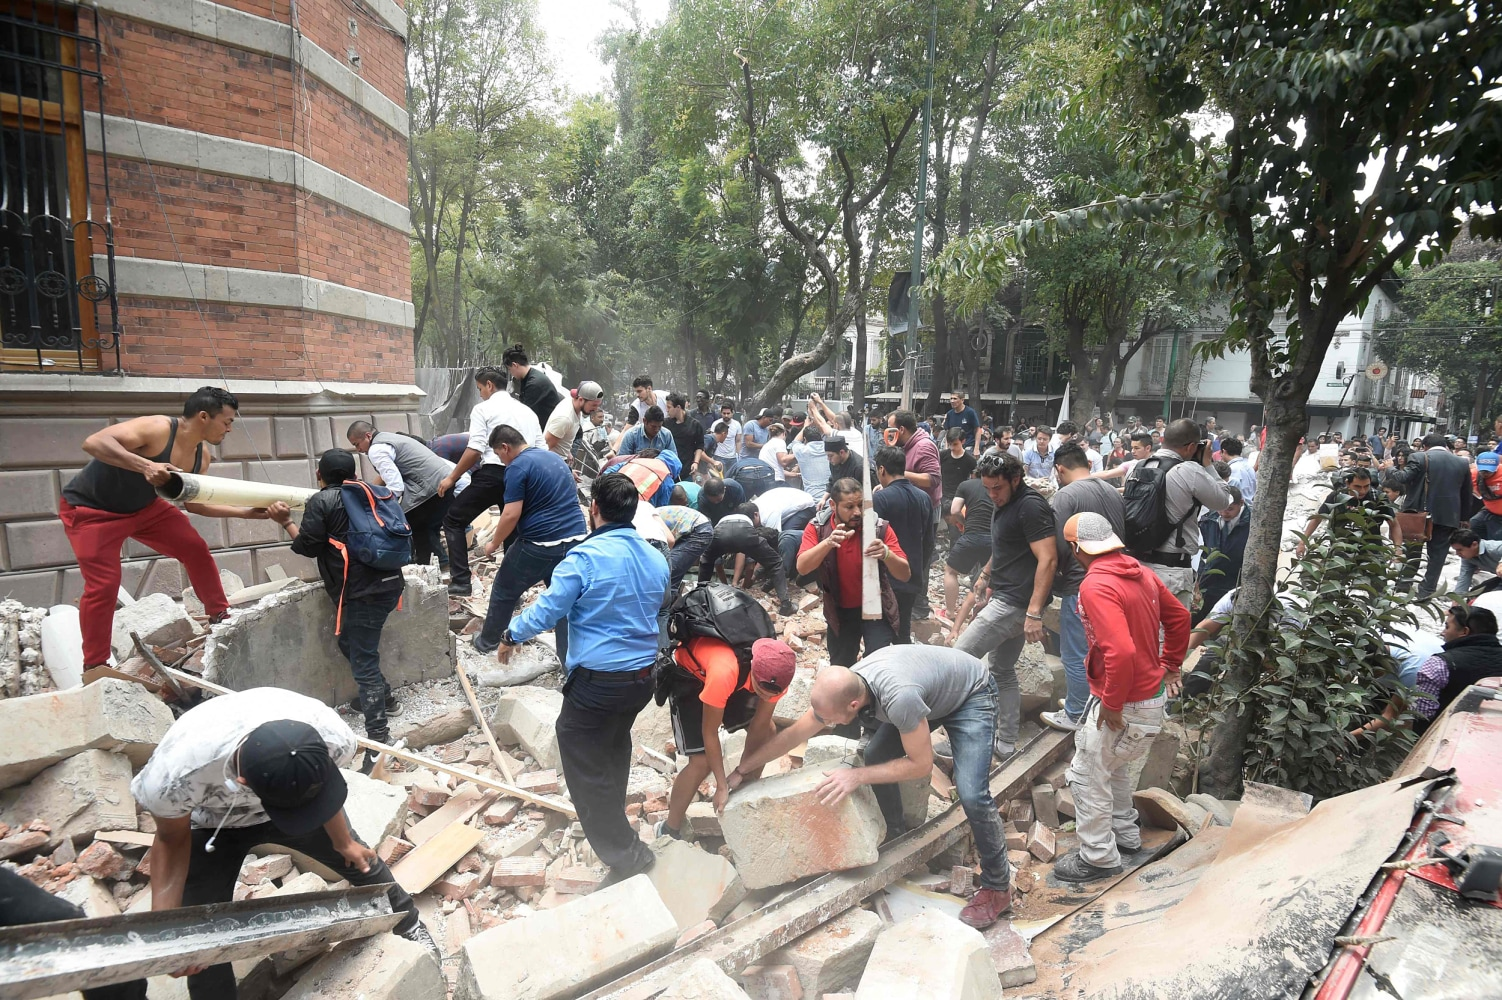 Hundreds of buildings toppled in deadly Mexico quake